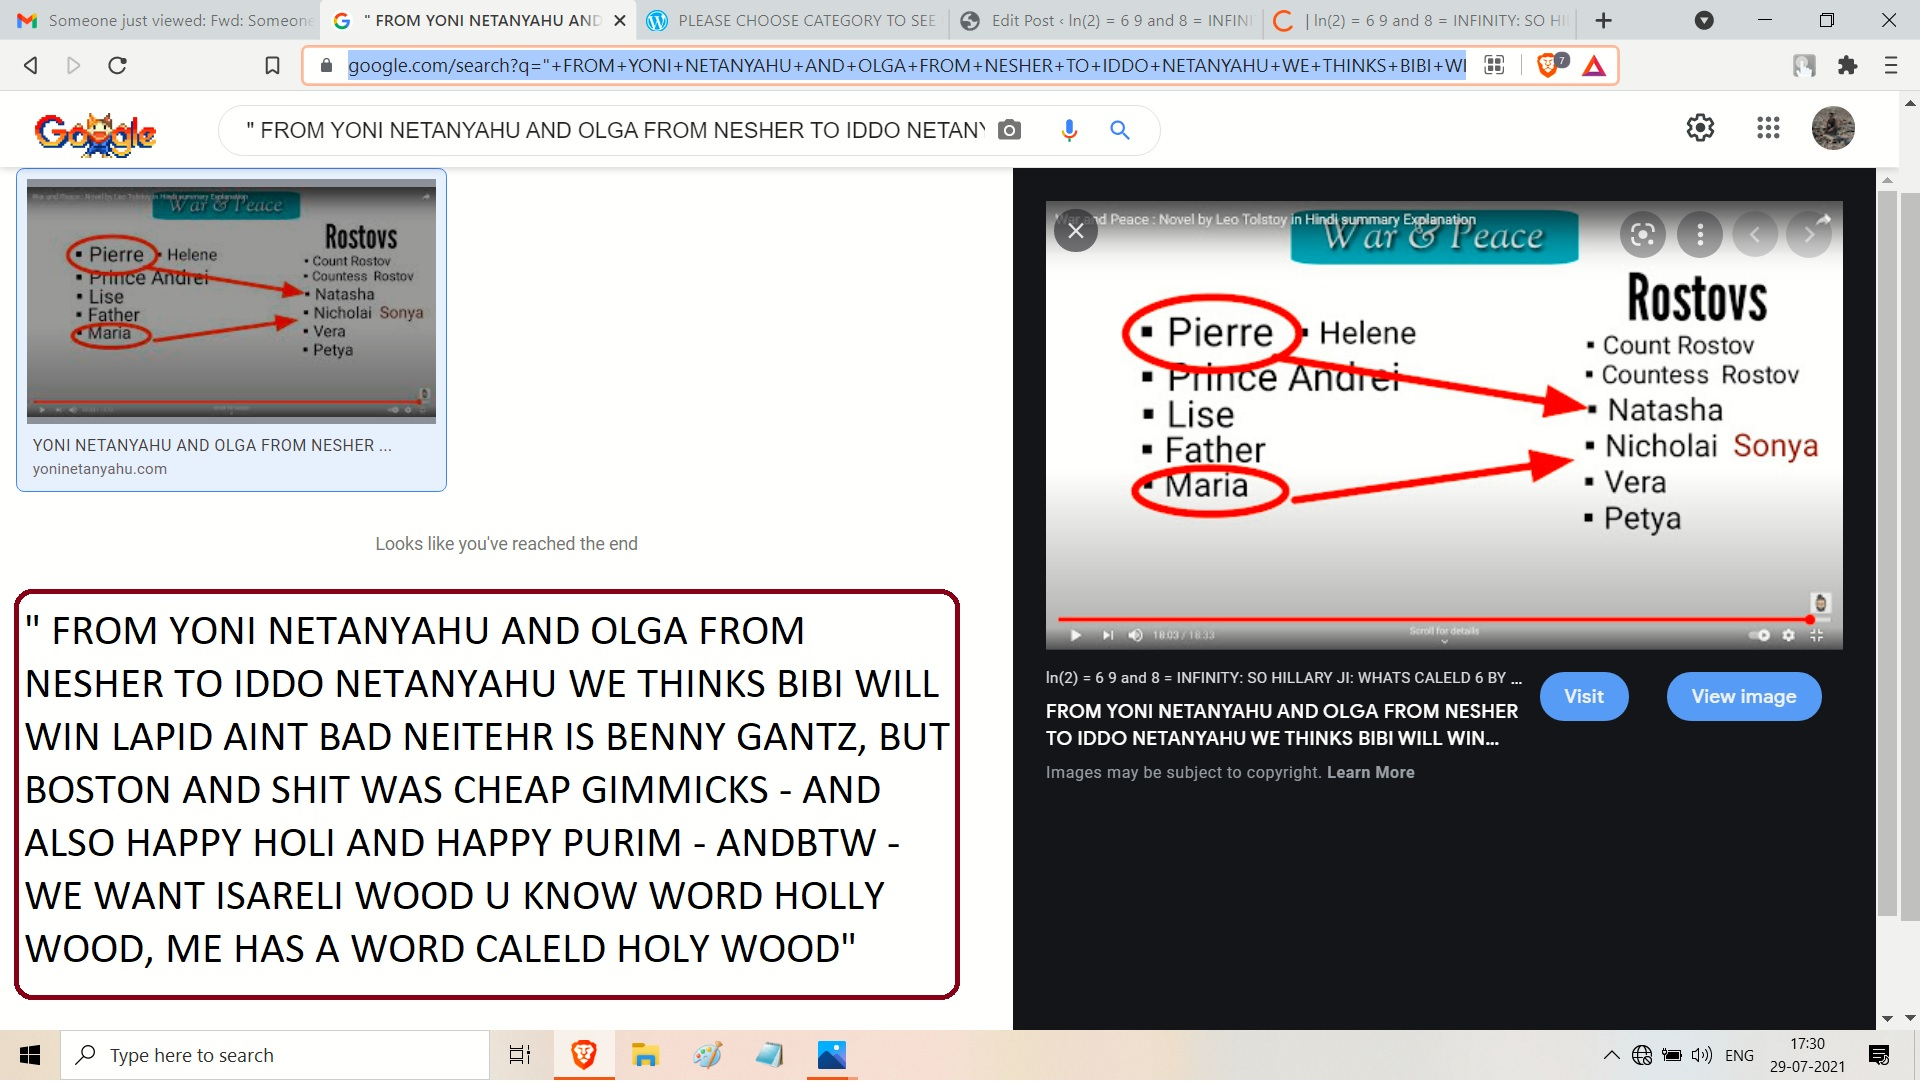 """"""" FROM YONI NETANYAHU AND OLGA FROM NESHER TO IDDO NETANYAHU WE THINKS BIBI WILL WIN LAPID AINT BAD NEITEHR IS BENNY GANTZ, BUT BOSTON AND SHIT WAS CHEAP GIMMICKS - AND ALSO HAPPY HOLI AND HAPPY PURIM - ANDBTW - WE WANT ISARELI WOOD U KNOW WORD HOLLY WOOD, ME HAS A WORD CALELD HOLY WOOD"""""""